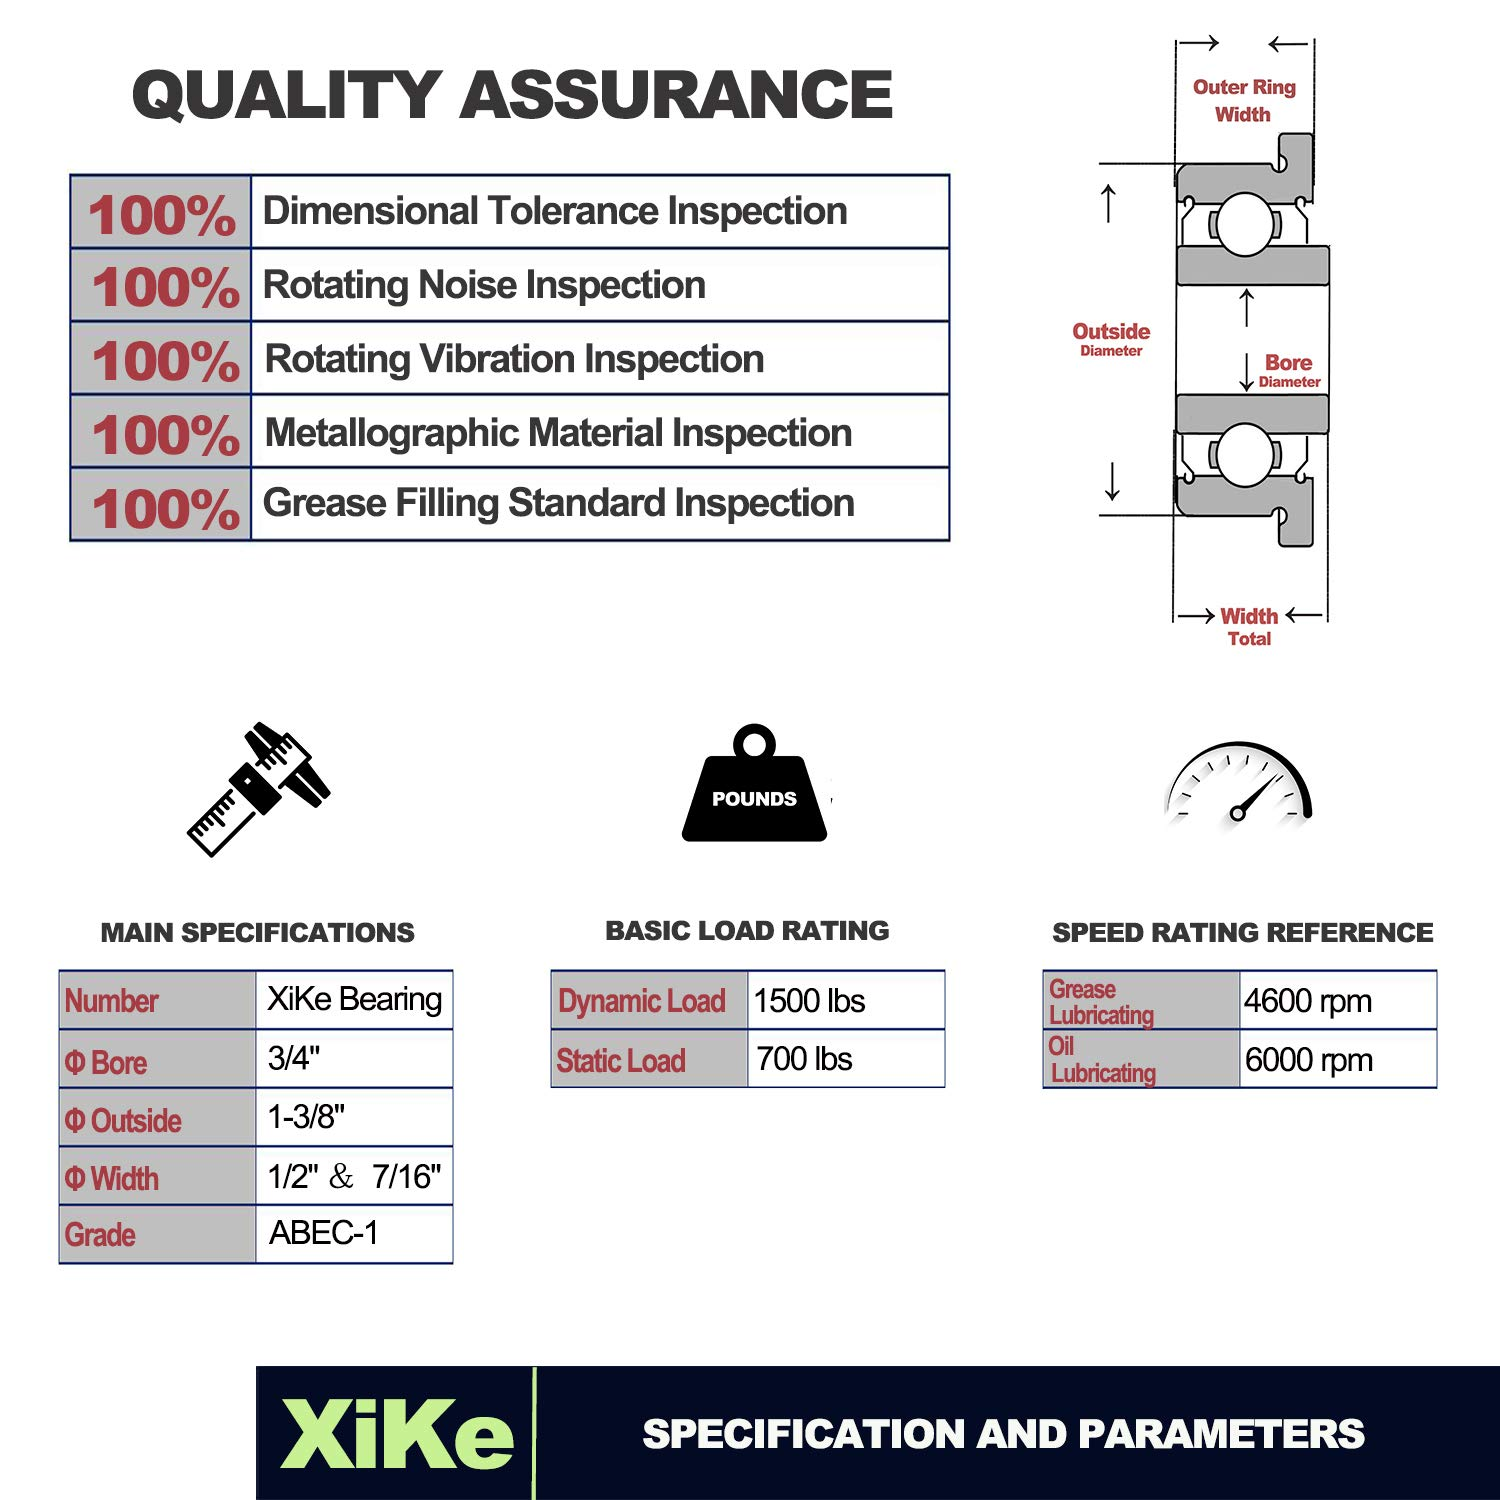 XiKe 4 Pack ID 3//4 x OD 1-3//8 Flanged Ball Bearing Lawn Mower Wheelbarrows Carts /& Hand Trucks Wheel Hub for Suitable Replace Marathon MTD JD and Toro and Snapper.